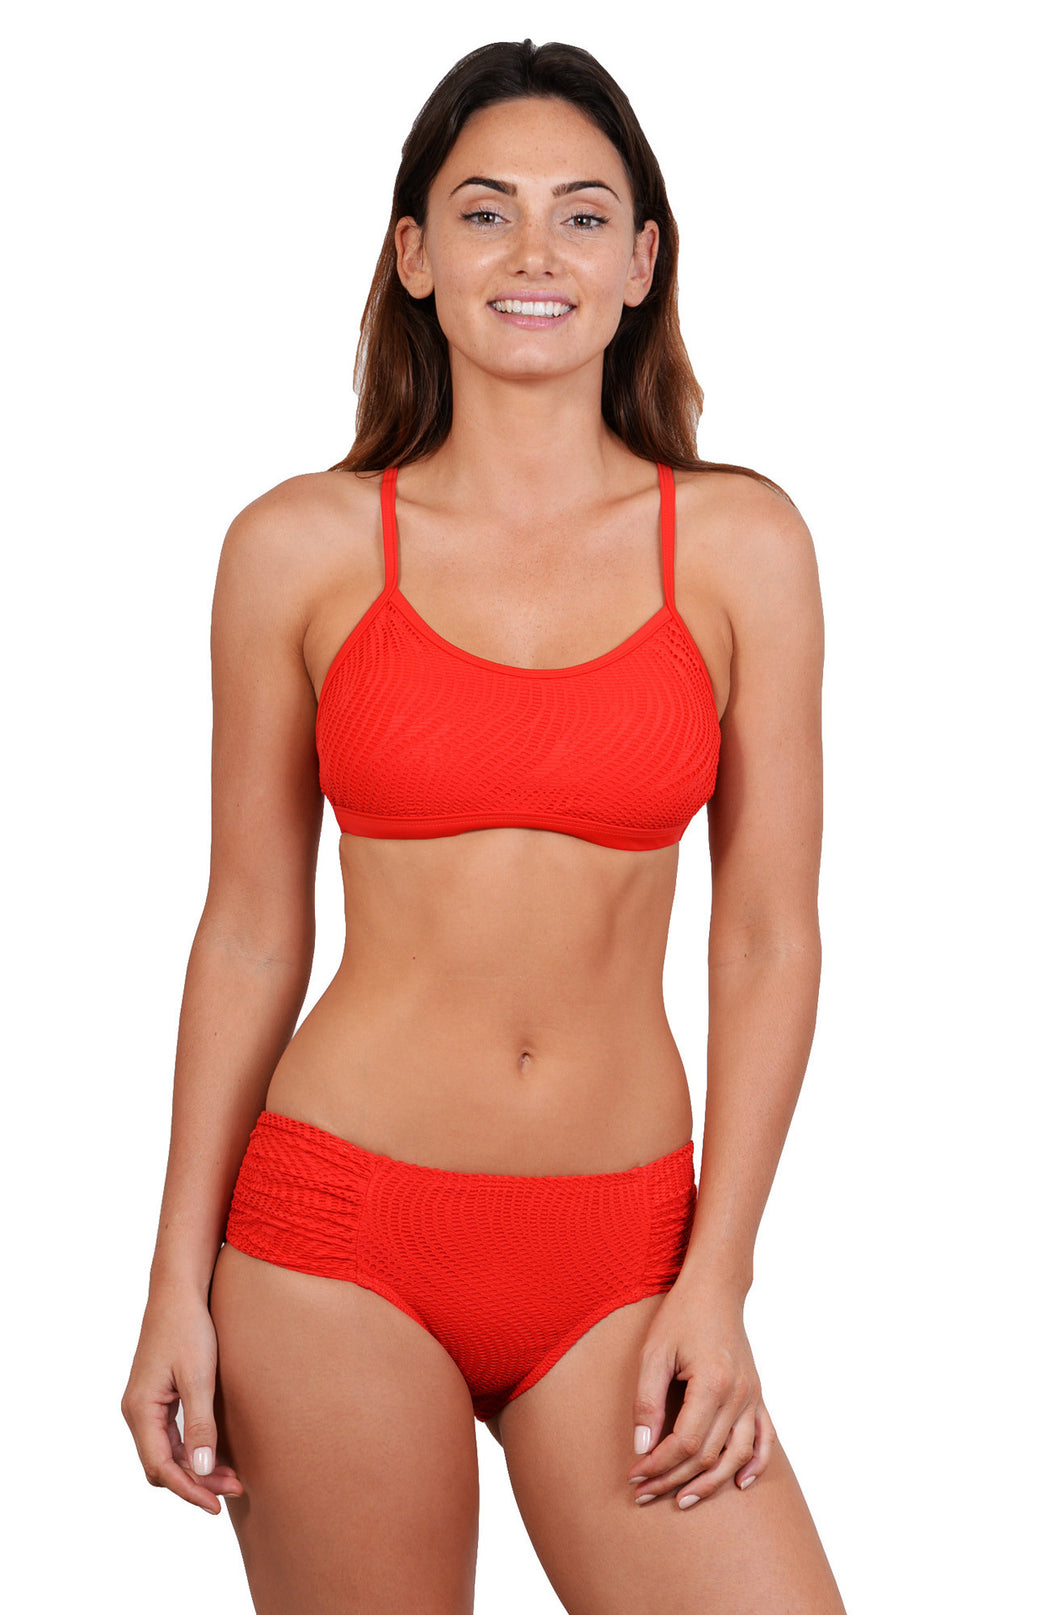 Bikini top with athletic style, removable cups, and adjustable straps